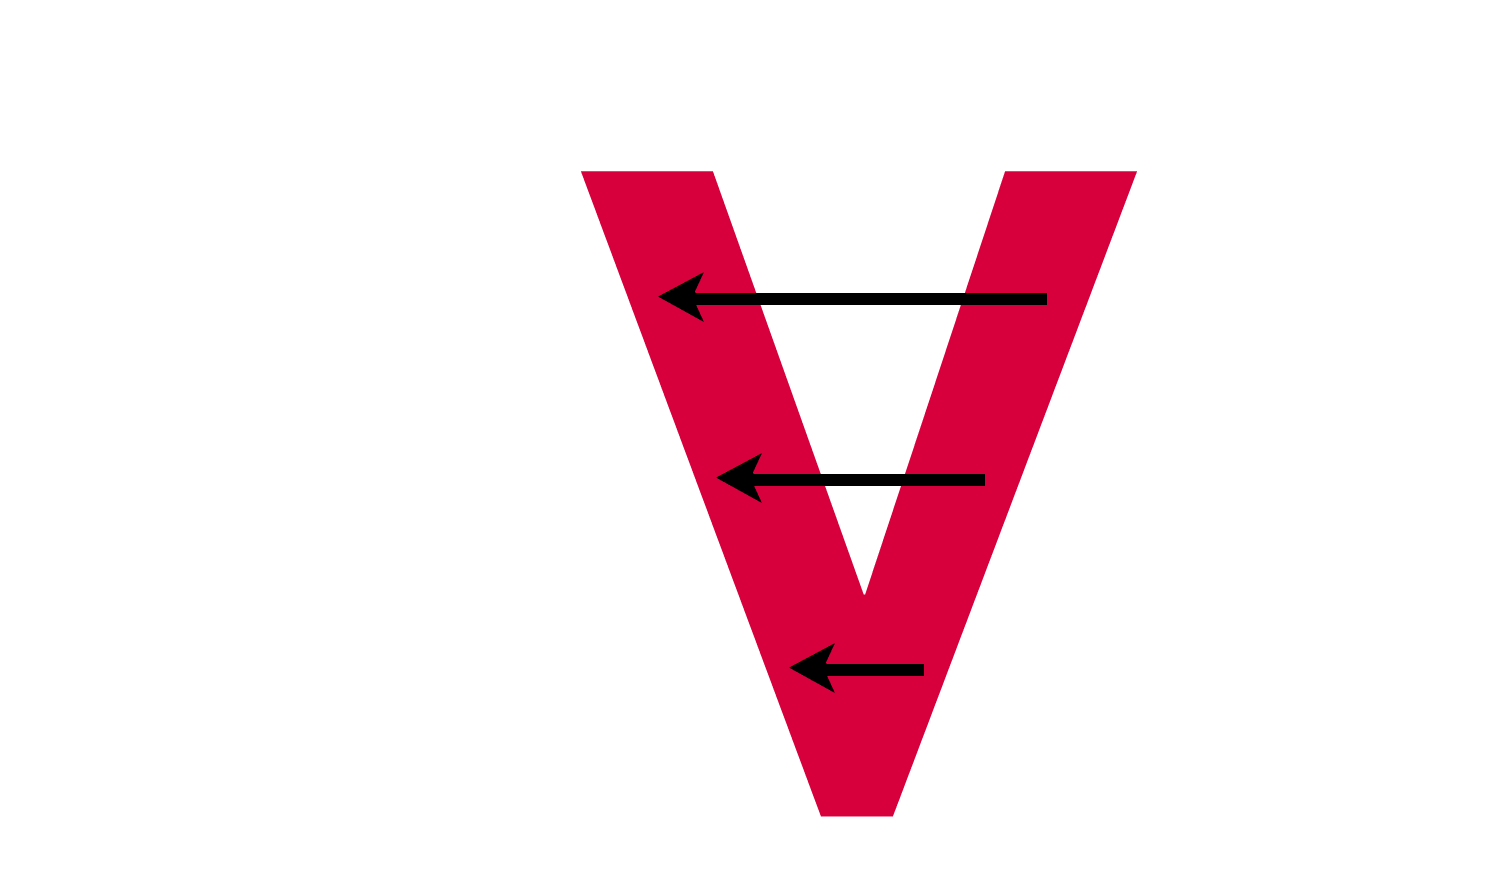 Specification & Test (DVP&R)